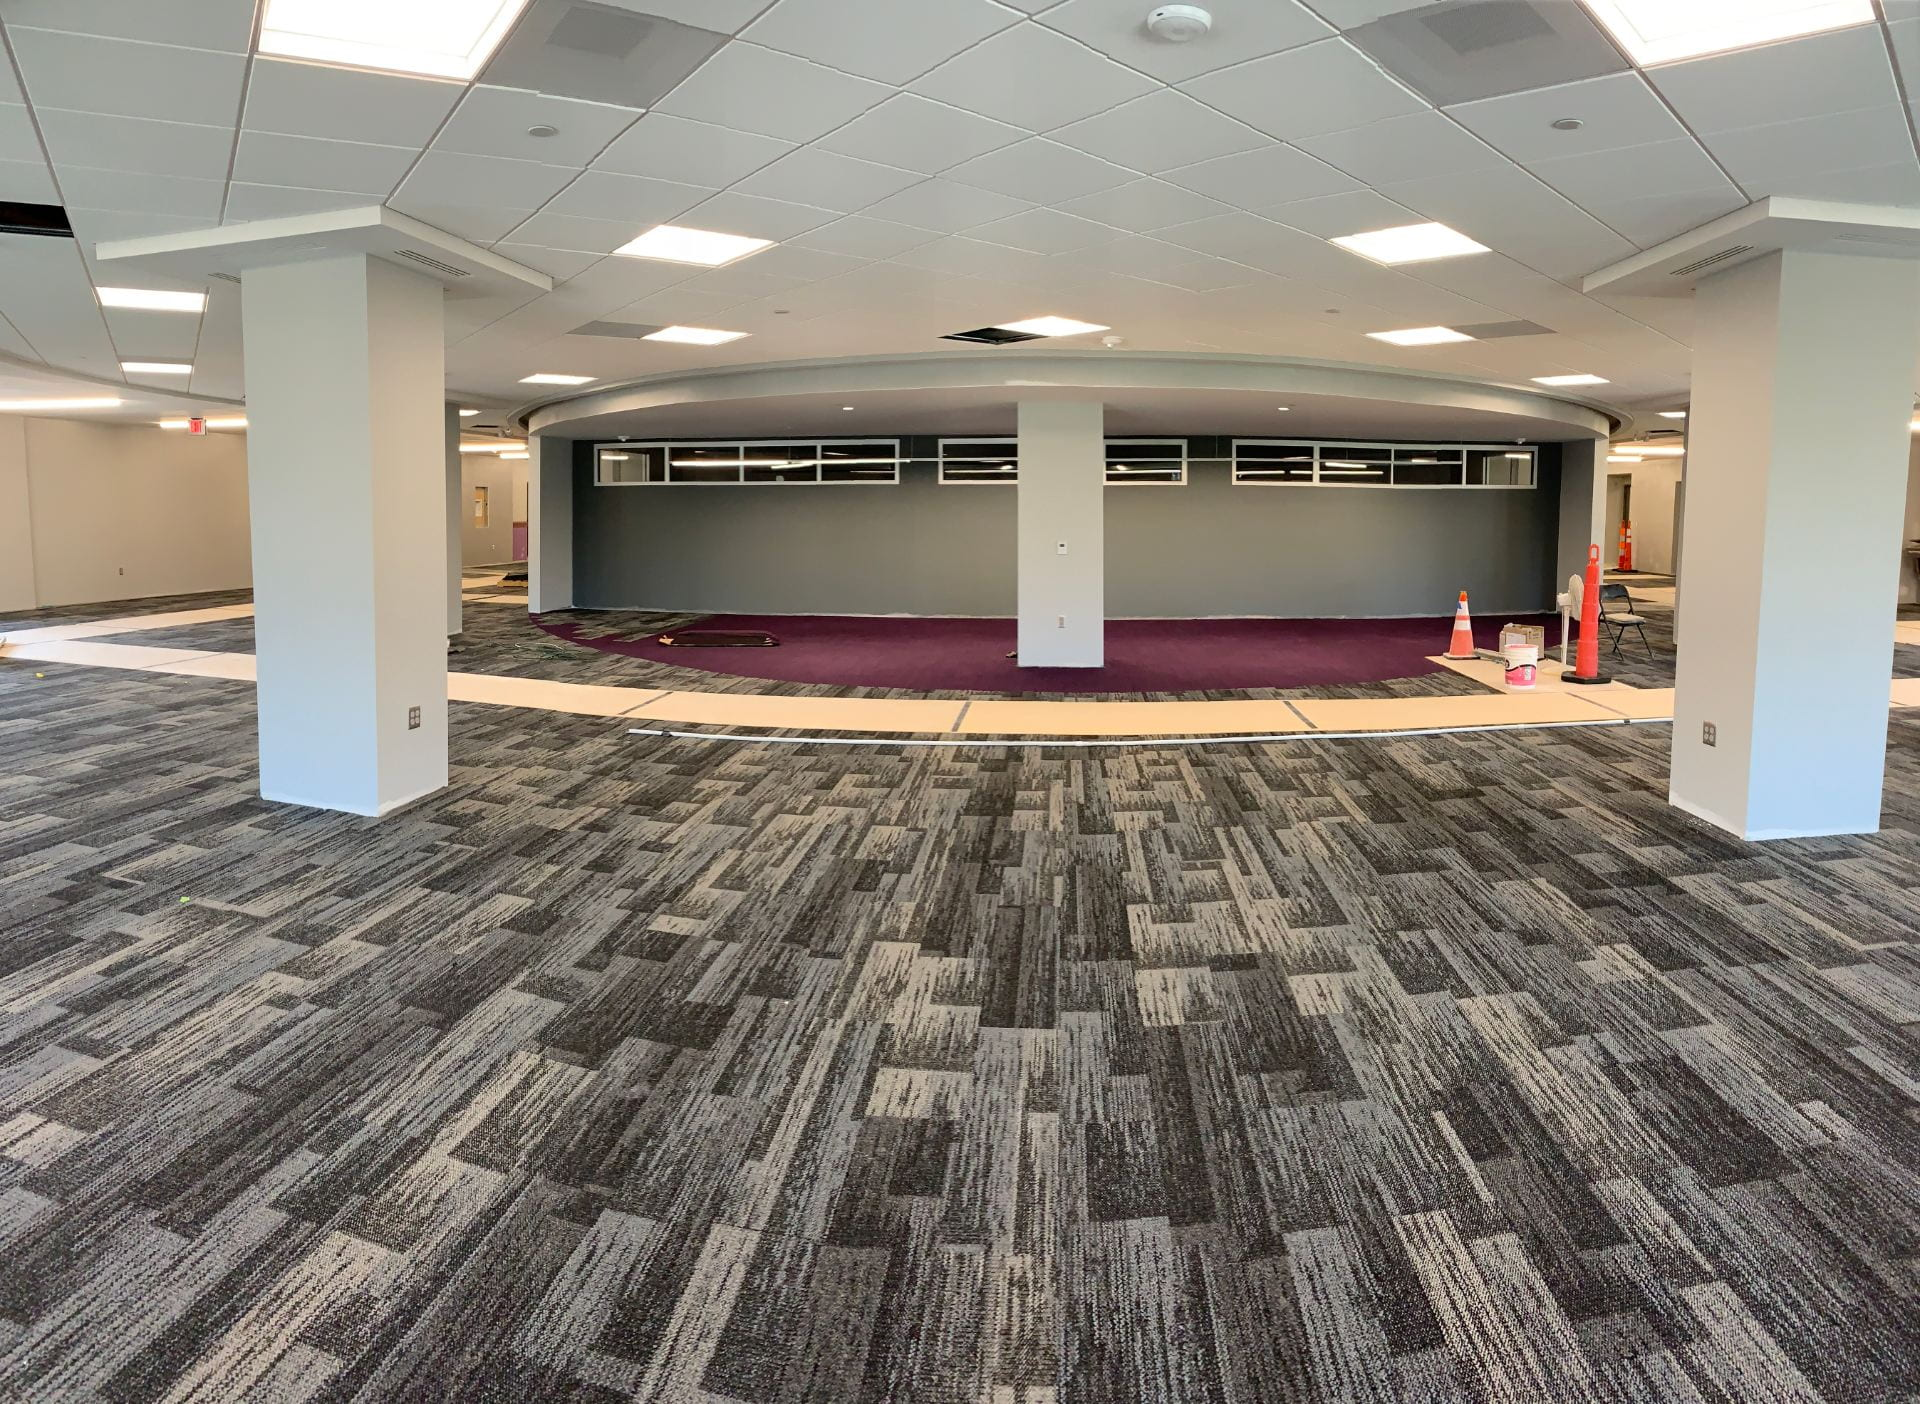 The area outside of the Friends of the K-State Libraries Instruction Room is carpeted as well.